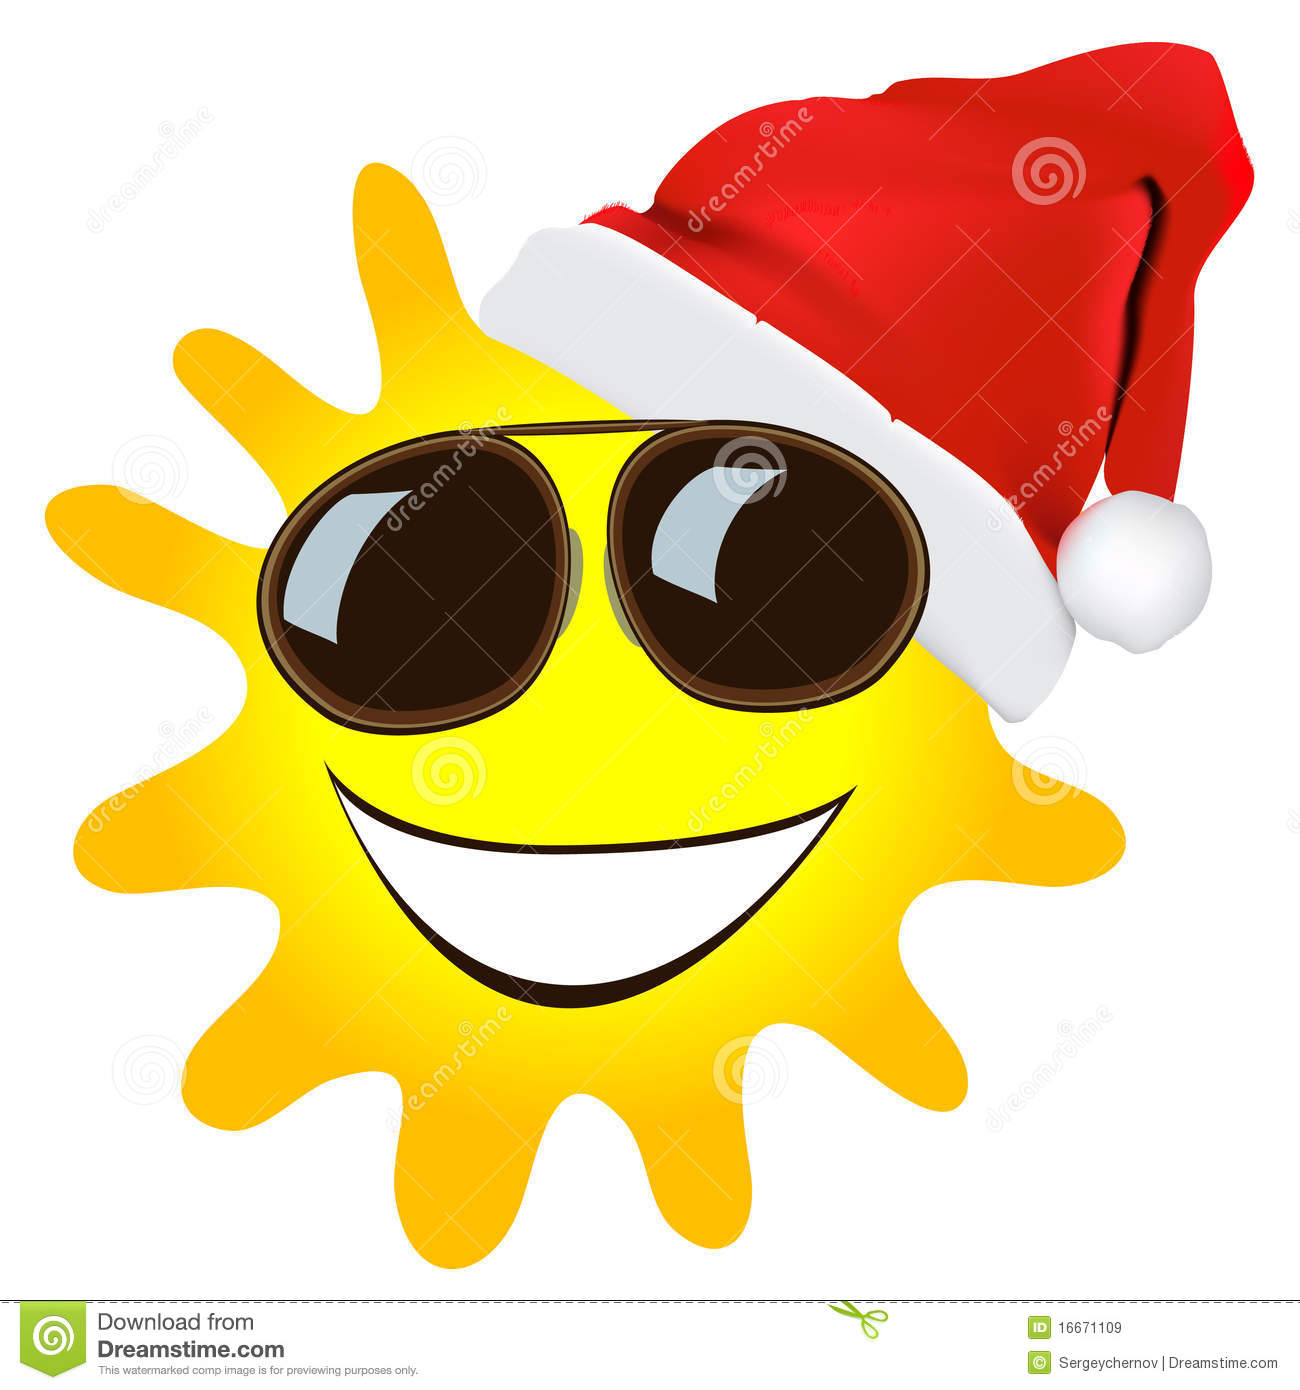 Christmas Sun Cartoon Royalty Free Stock Images - Image: 16671109